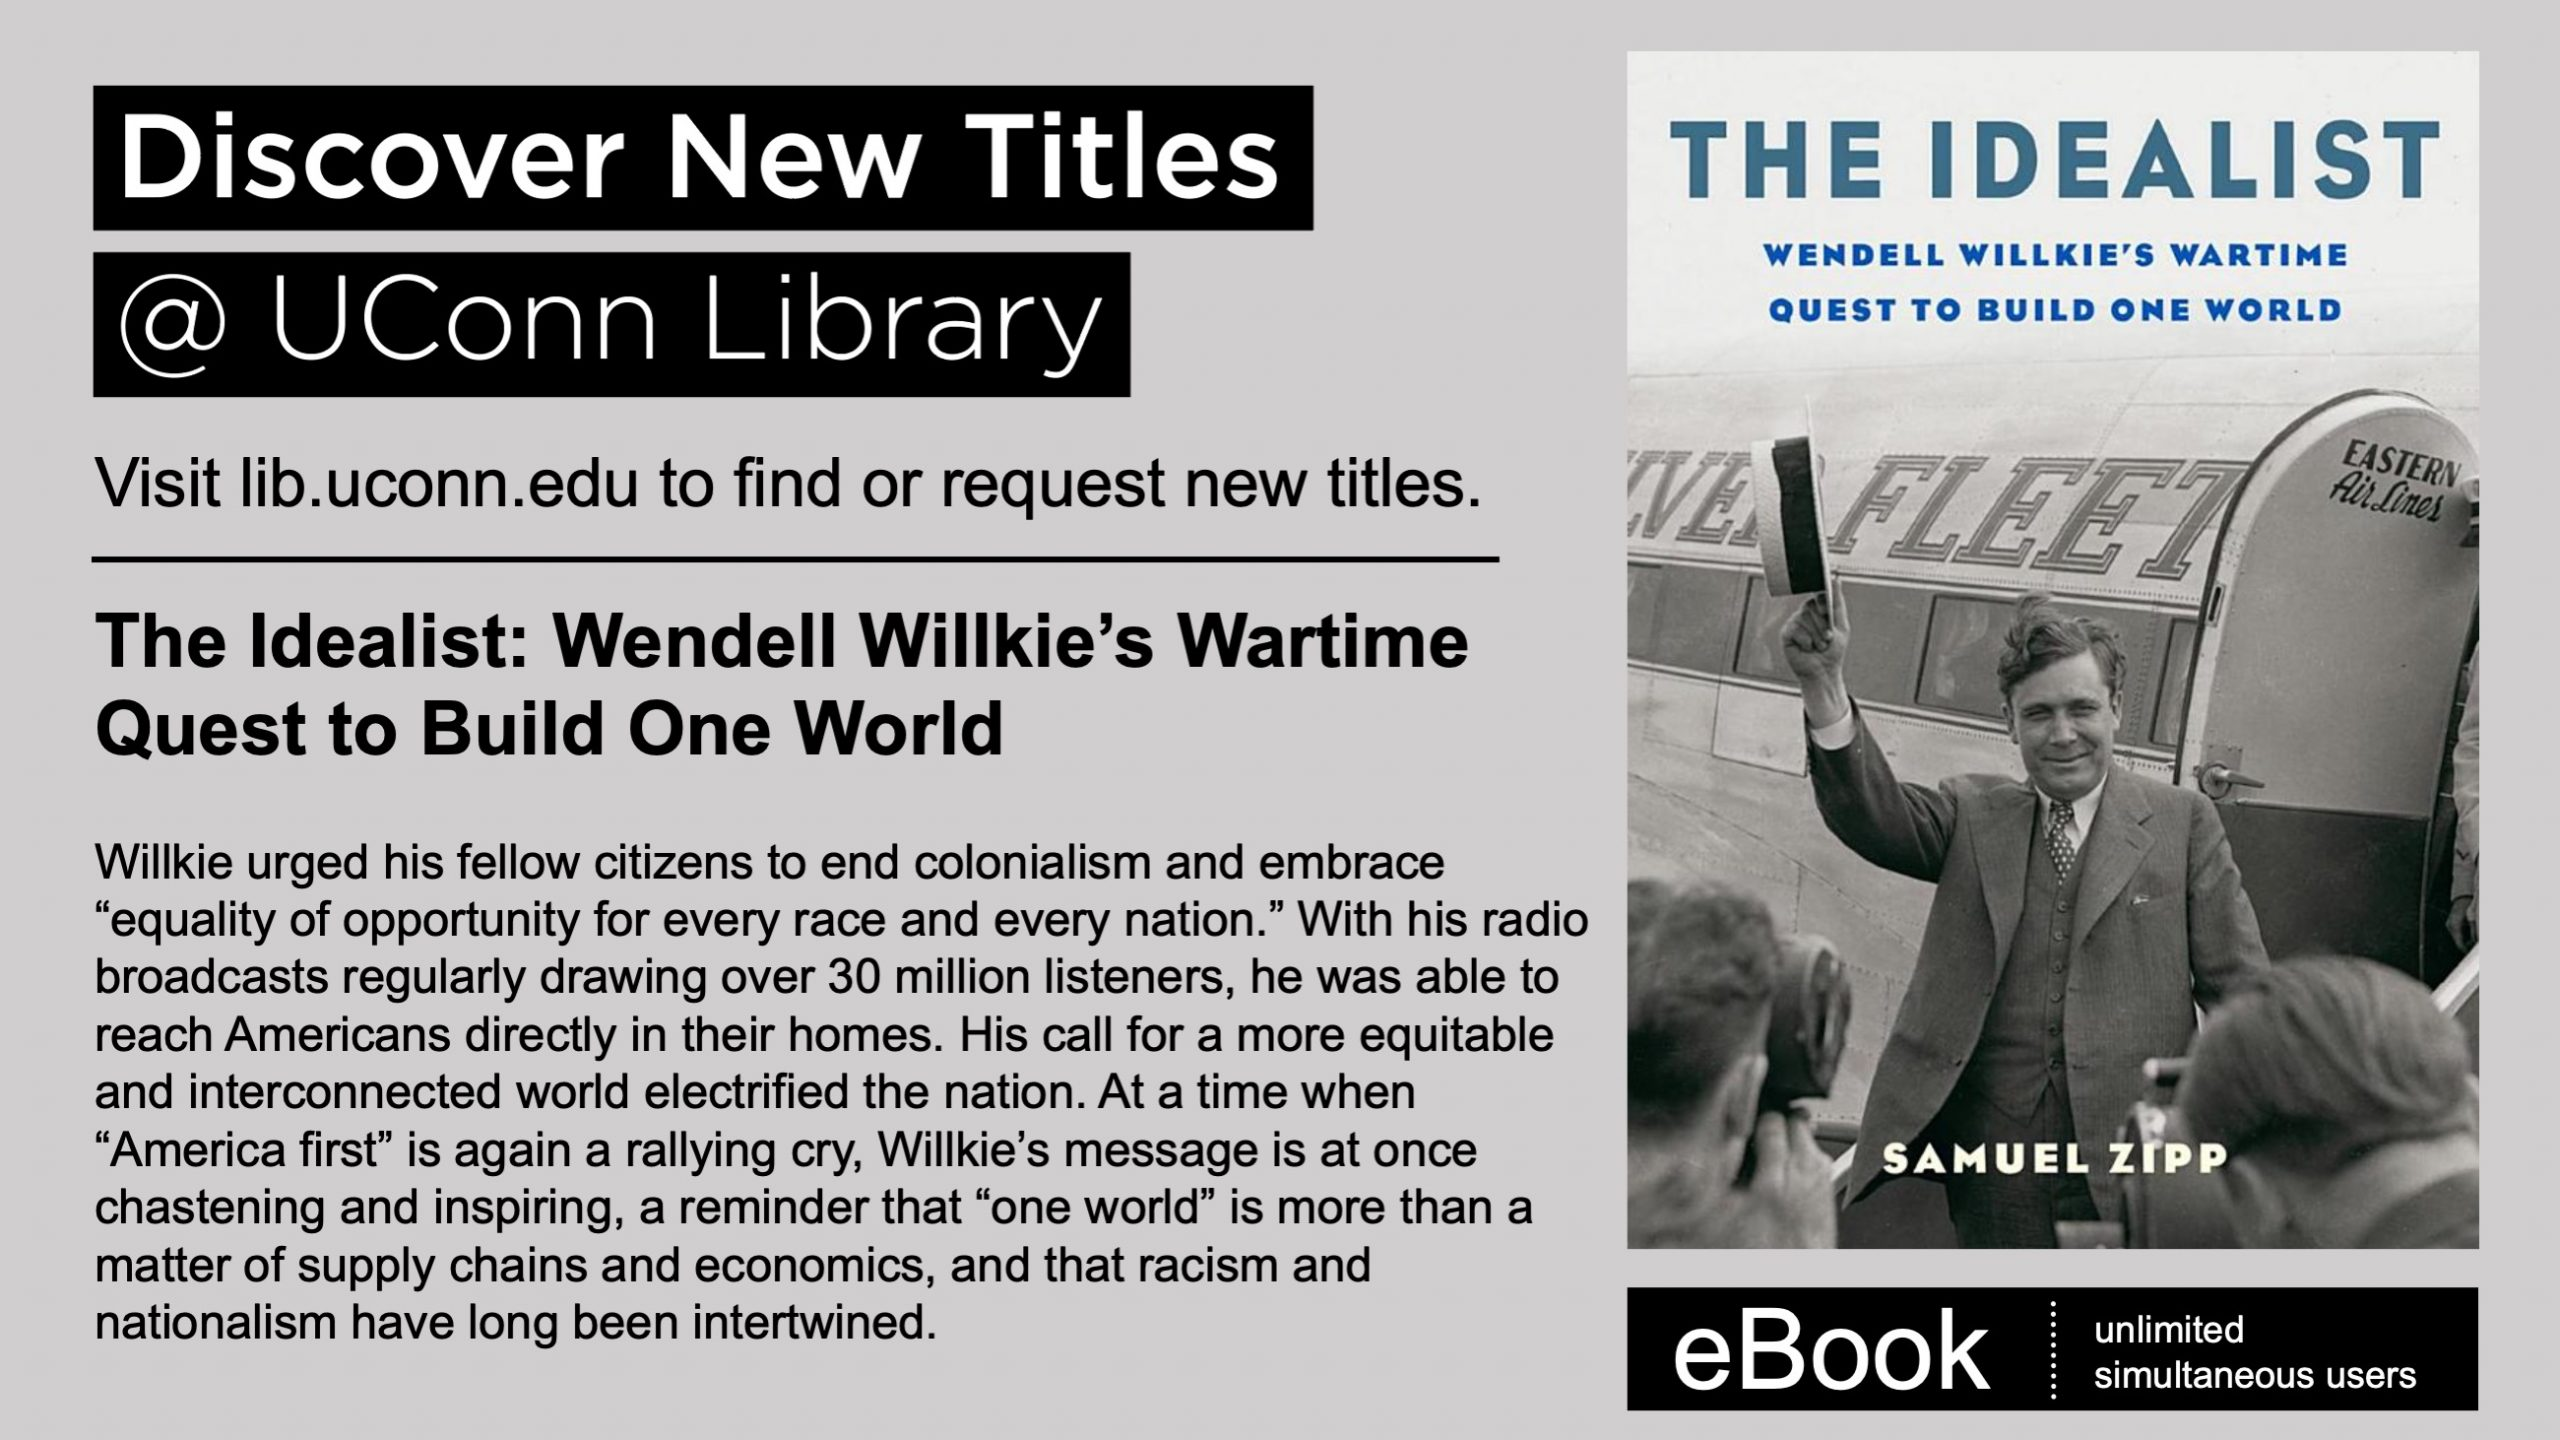 """Image description: marketing image, includes text: Discover New Titles at UConn Library. Visit lib.uconn.edu to find or request new titles. eBook. Unlimited simultaneous users. The Idealist: Wendell Willkie's Wartime Quest to Build One World. Willkie urged his fellow citizens to end colonialism and embrace """"equality of opportunity for every race and every nation."""" With his radio broadcasts regularly drawing over 30 million listeners, he was able to reach Americans directly in their homes. His call for a more equitable and interconnected world electrified the nation. At a time when """"America first"""" is again a rallying cry, Willkie's message is at once chastening and inspiring, a reminder that """"one world"""" is more than a matter of supply chains and economics, and that racism and nationalism have long been intertwined. Image included is of cover of book."""